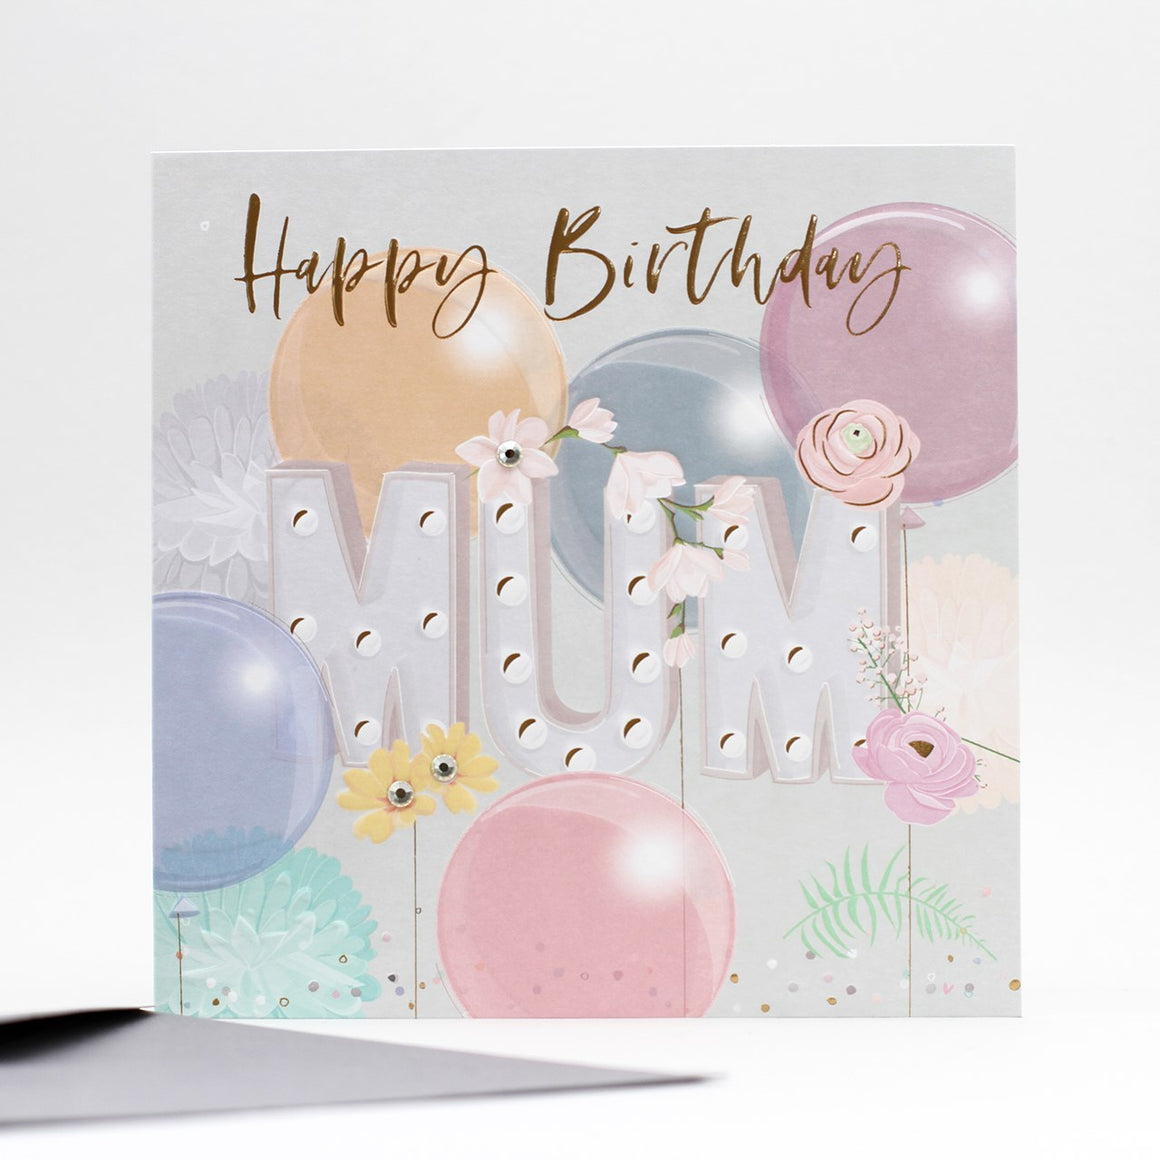 Belly Button Designs Happy Birthday Mum Card